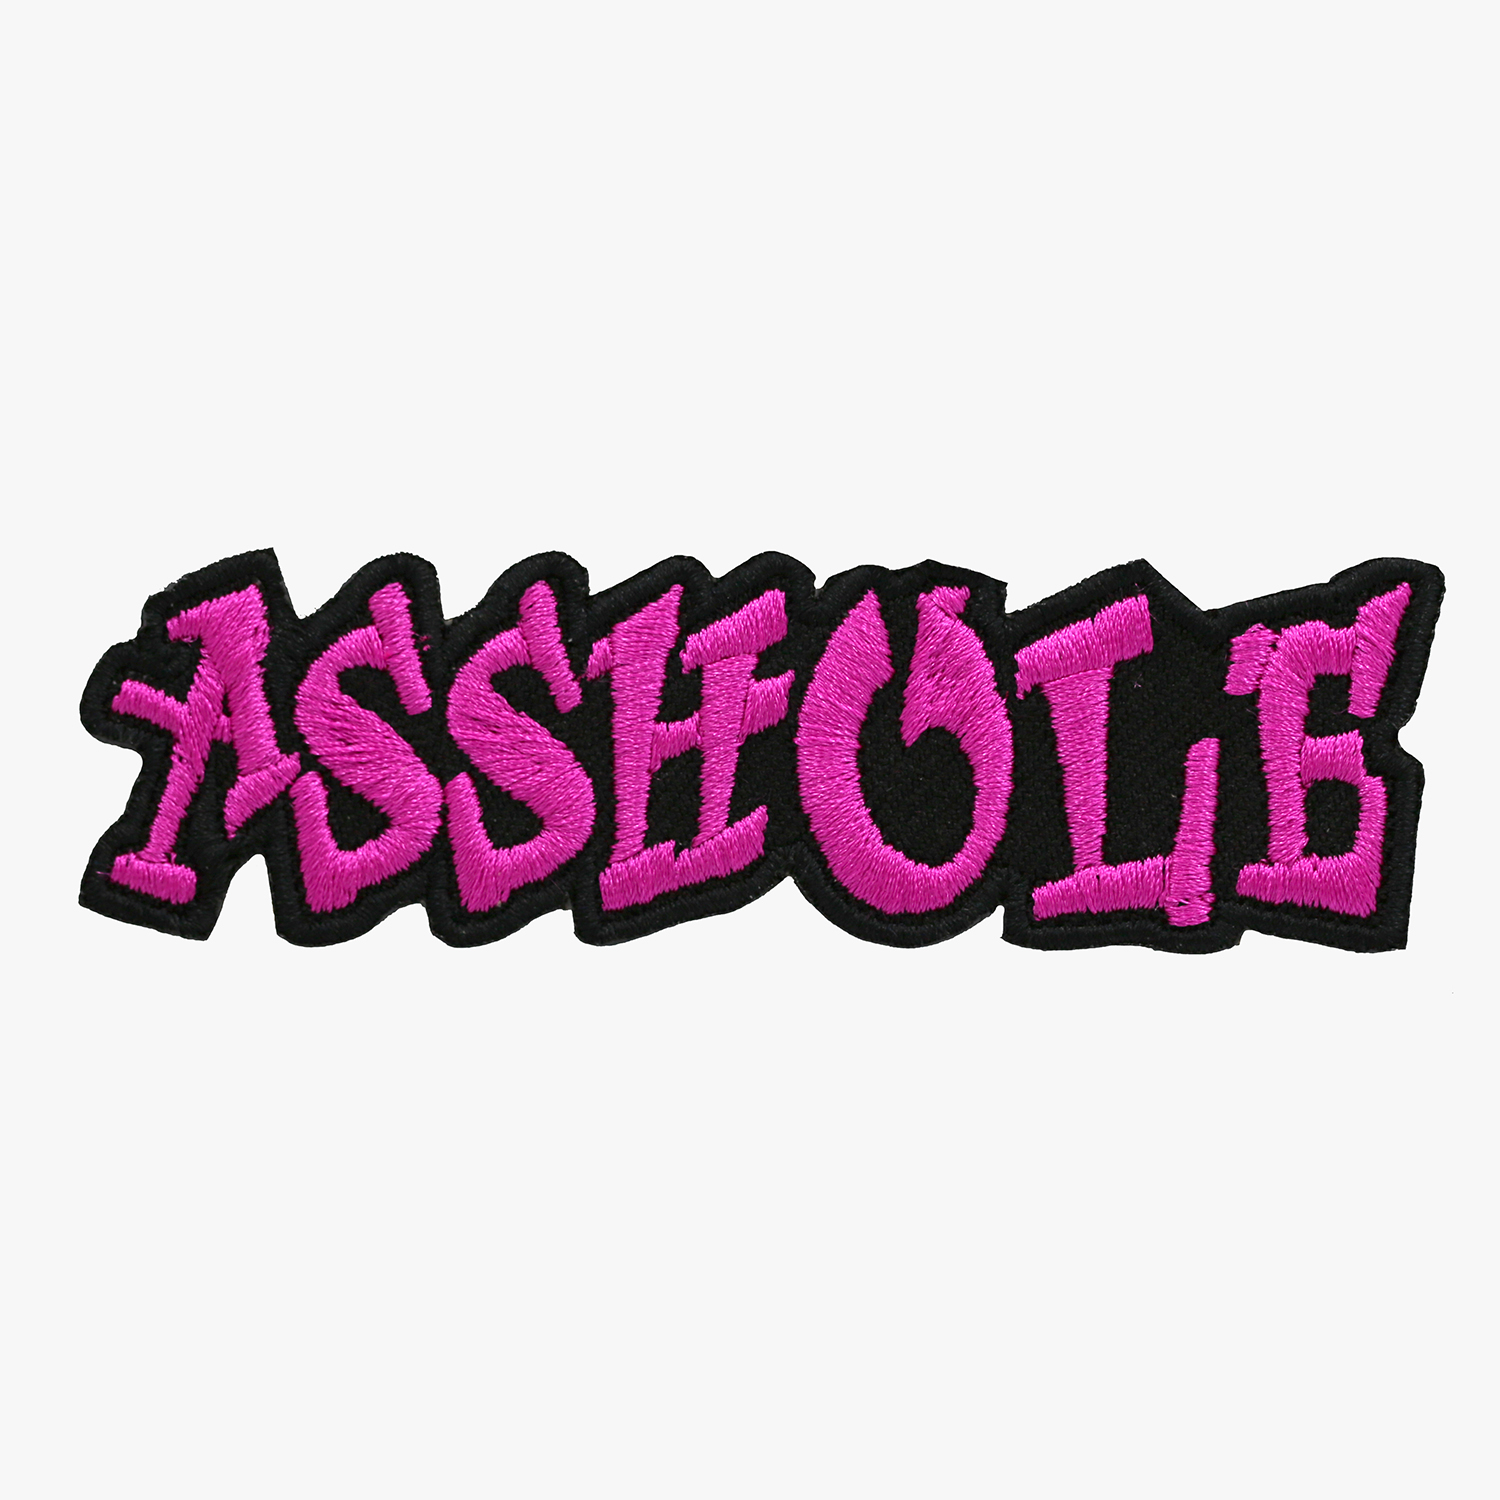 New Asshole Embroidered Biker Leather Vest Patch